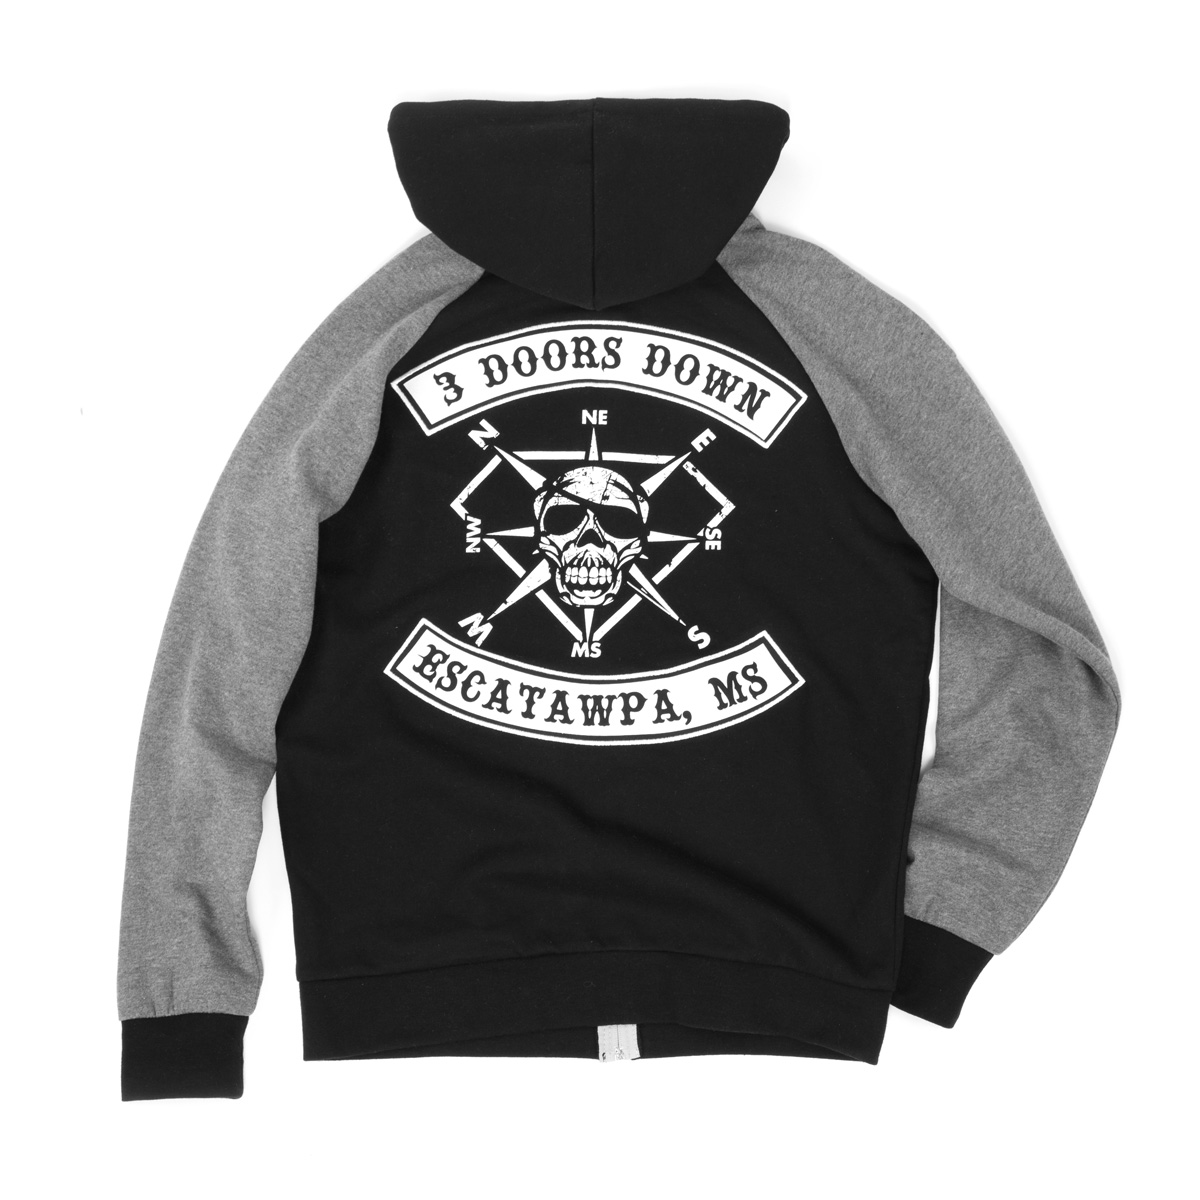 3 Doors Down Custom Black Hoodie